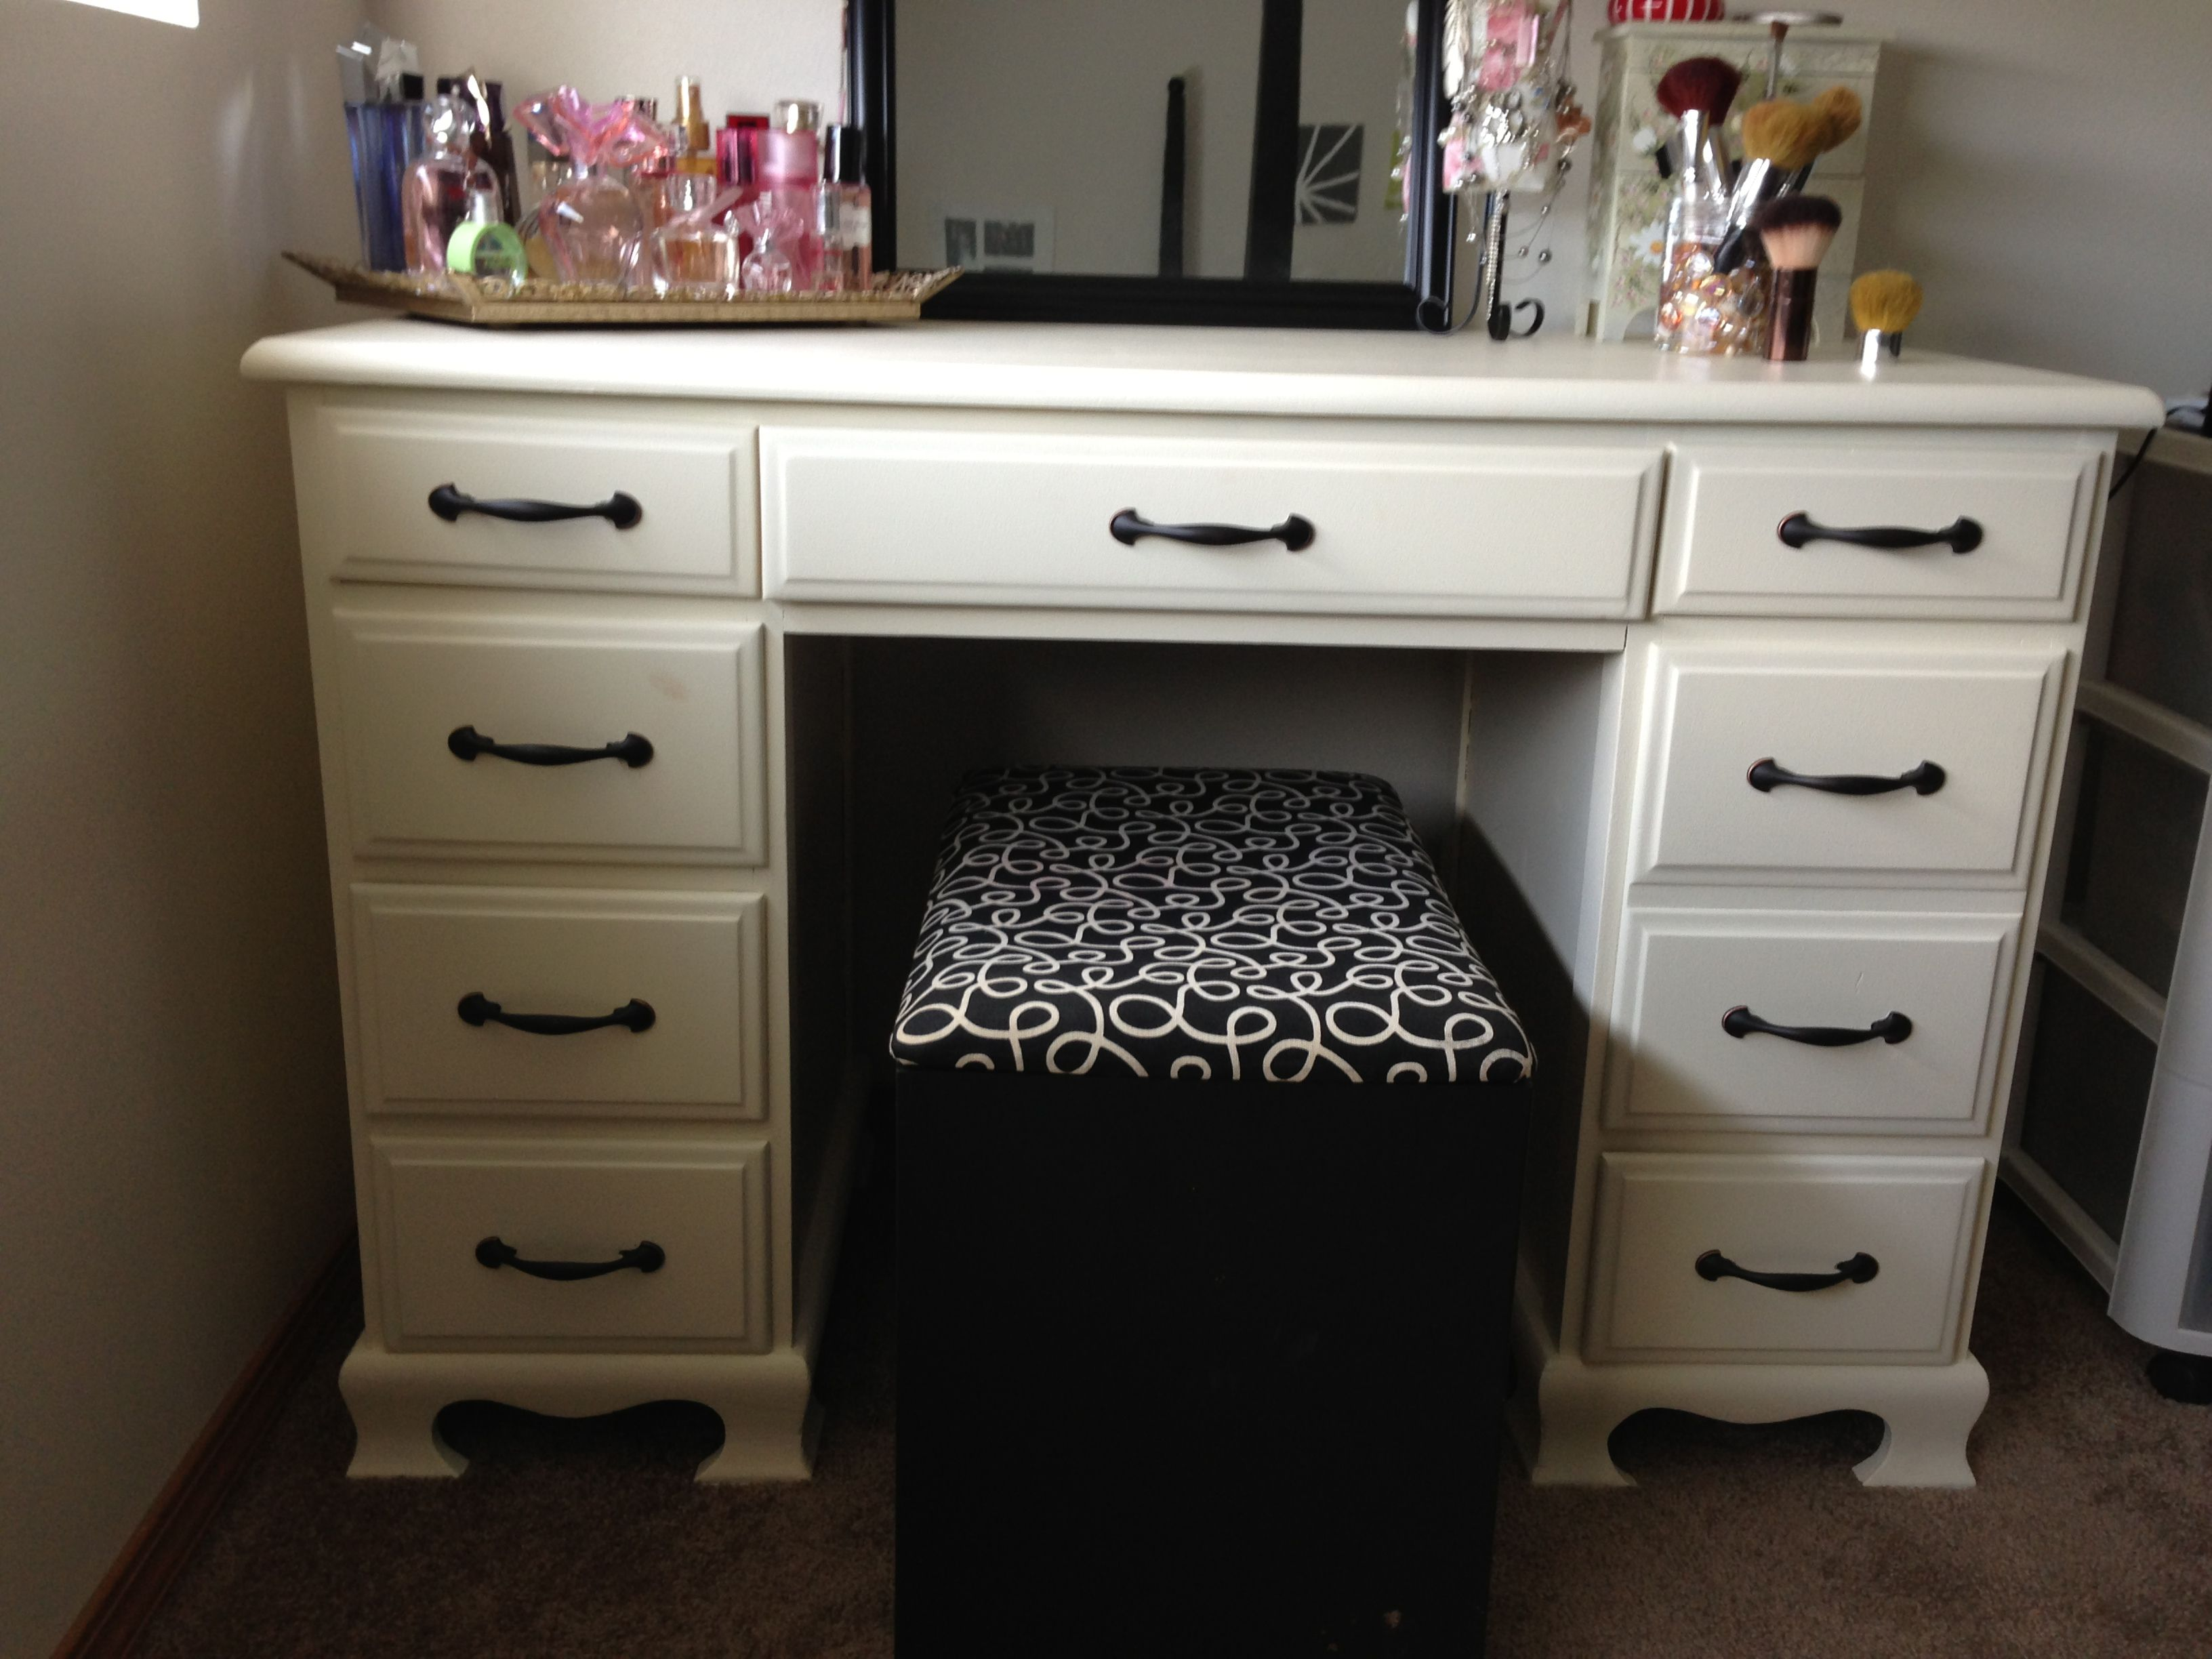 Here S The Makeup Vanity I Made A Couple Of Weekends Ago I Bought An Old Desk From Cra With Images Apartment Decorating For Couples Exquisite Decor Master Bathroom Design